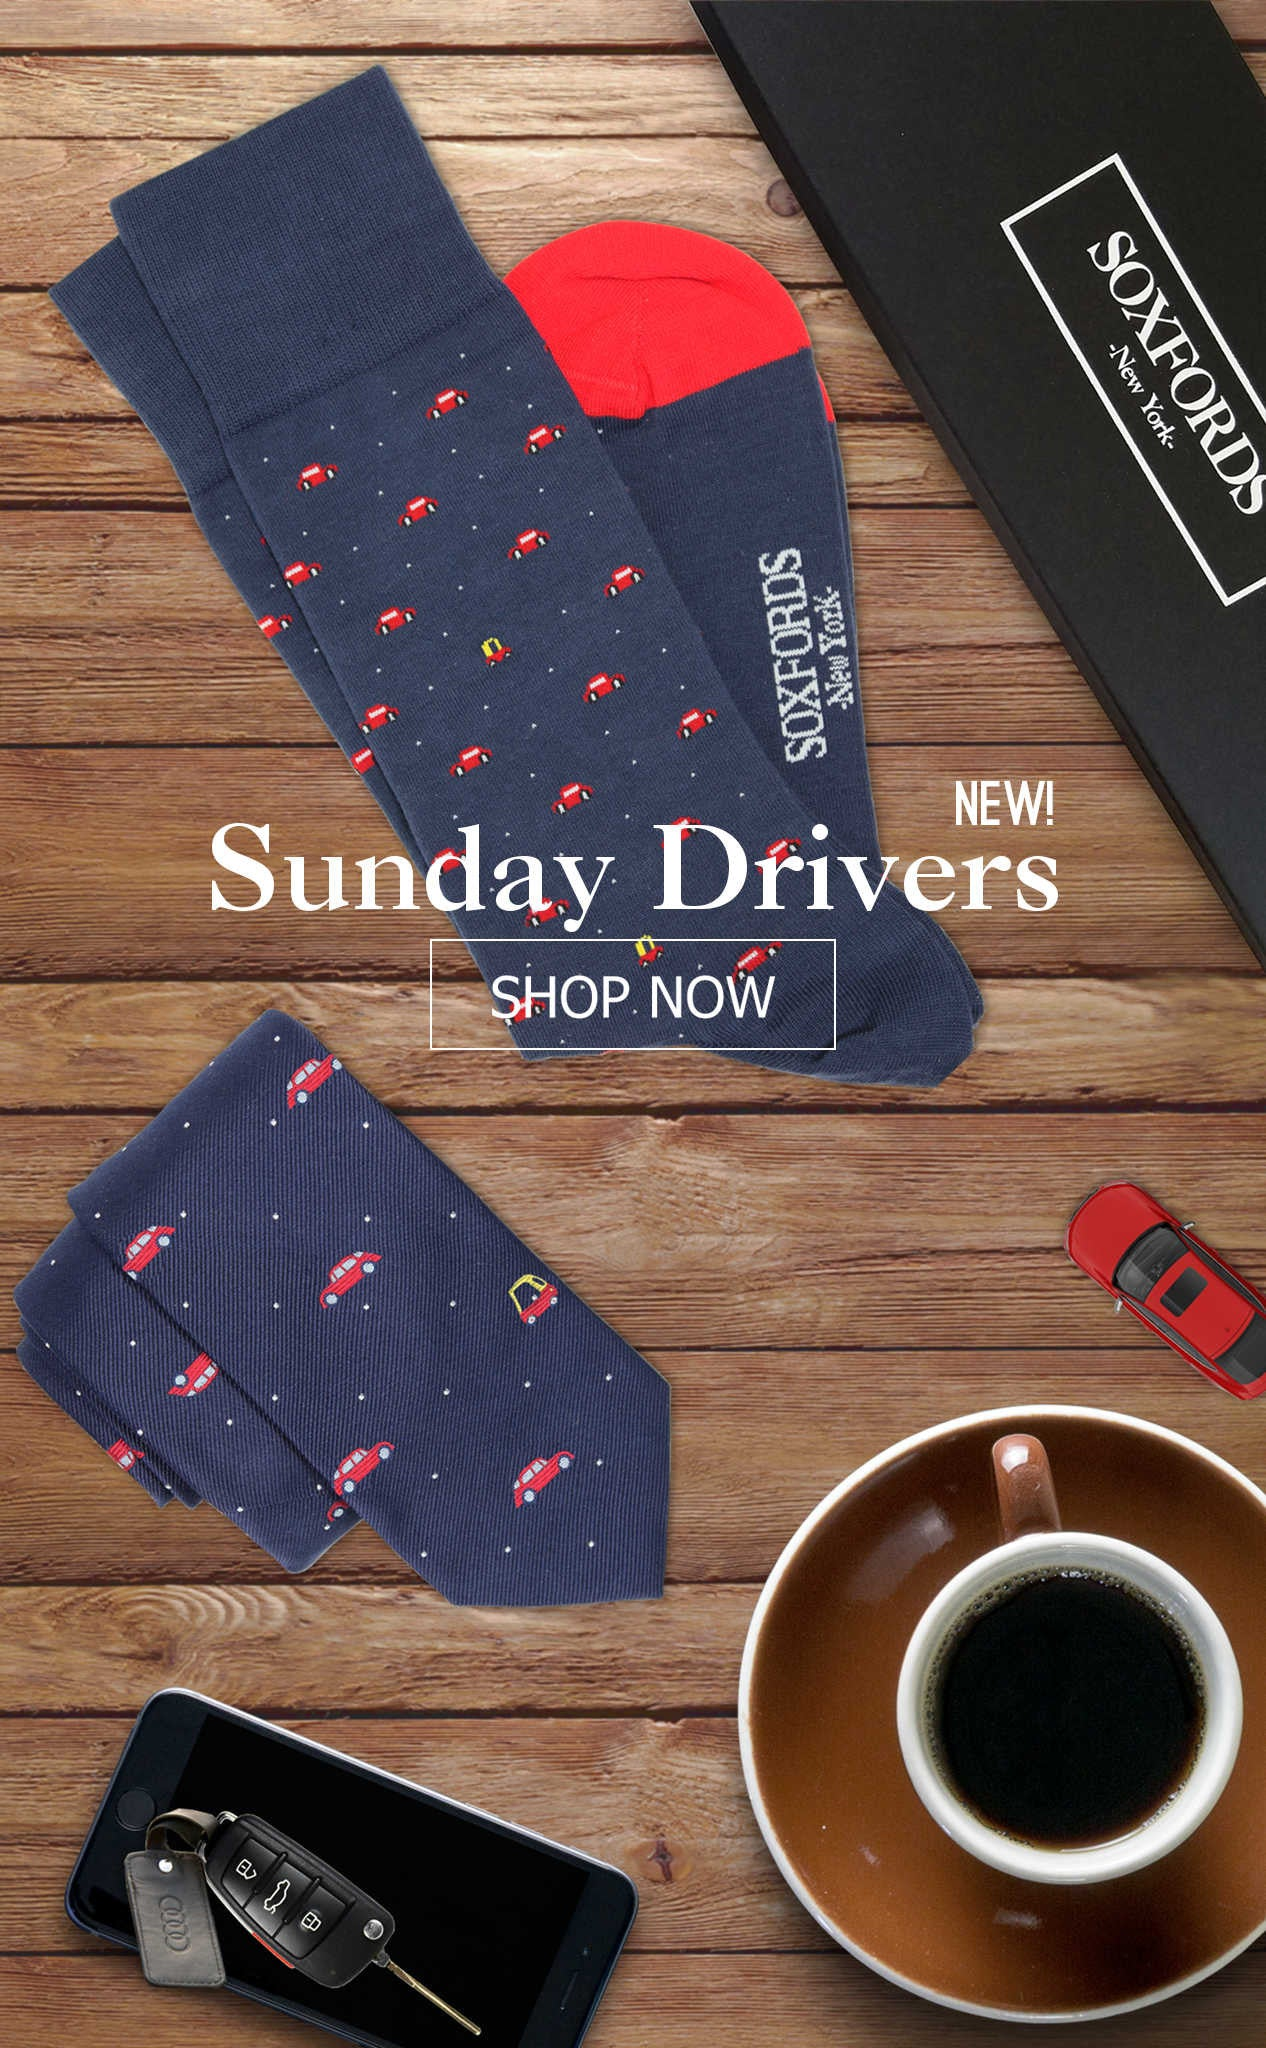 Soxfords Original Cars Patterned Socks and Tie